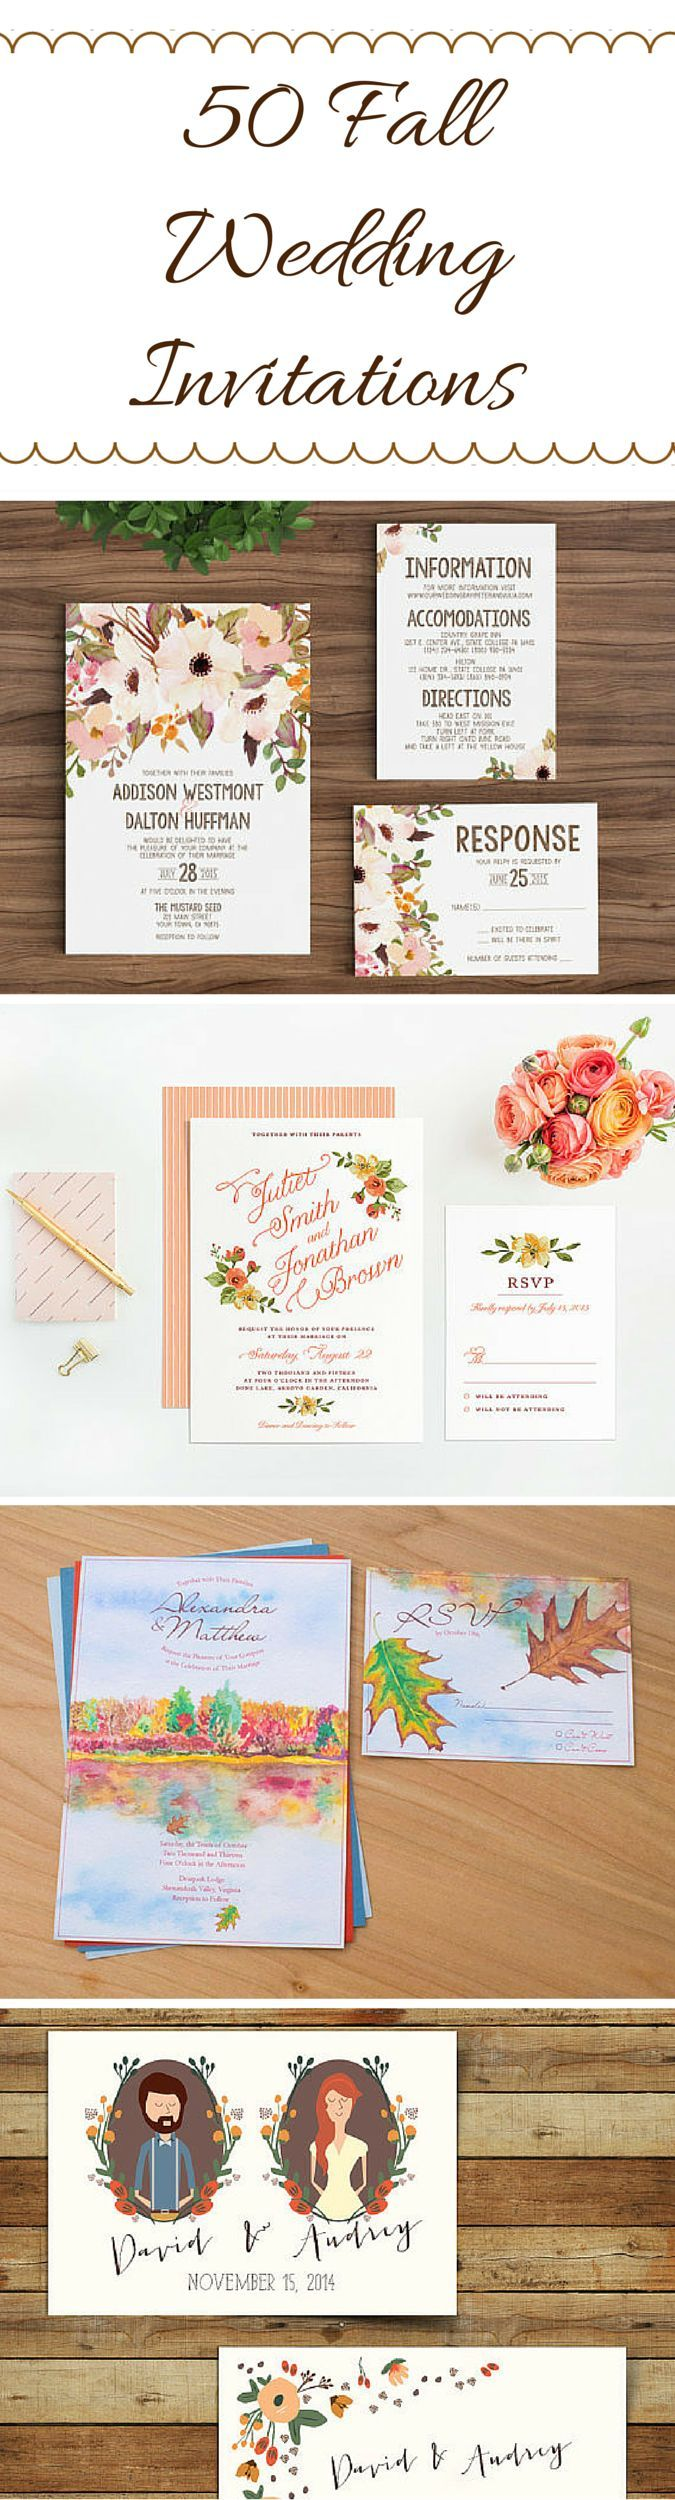 in wedding invitations is the man s name first%0A Illustrated Couples Portrait Autumn Wedding Invitations Woodland Wedding  Invitations  don u    t like the colours  Fall Oak Tree Falling in Love Wedding